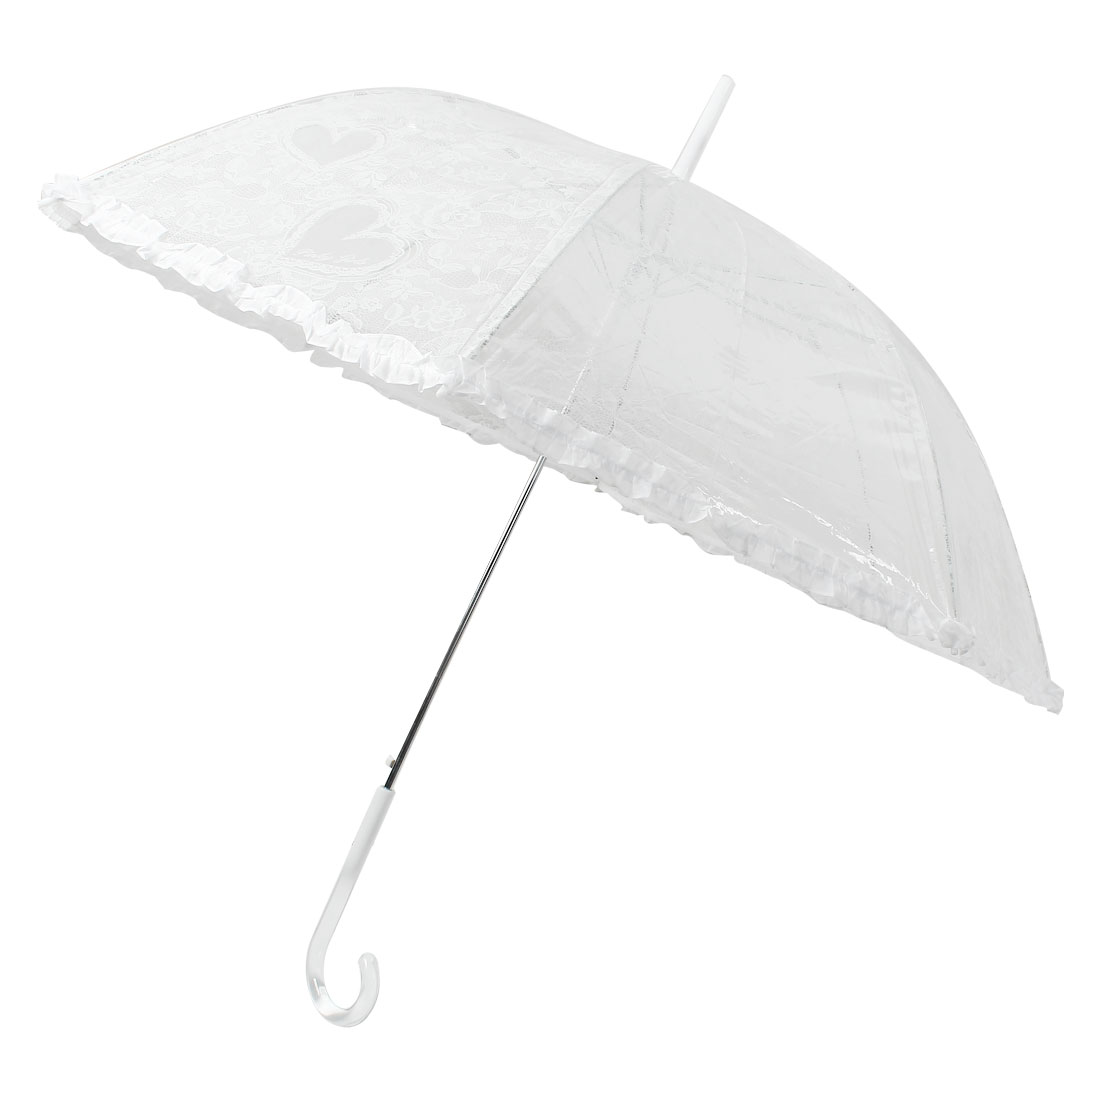 Clear White Walking Stick Crooked Handle Flower Heart Print Lace Rim Umbrella